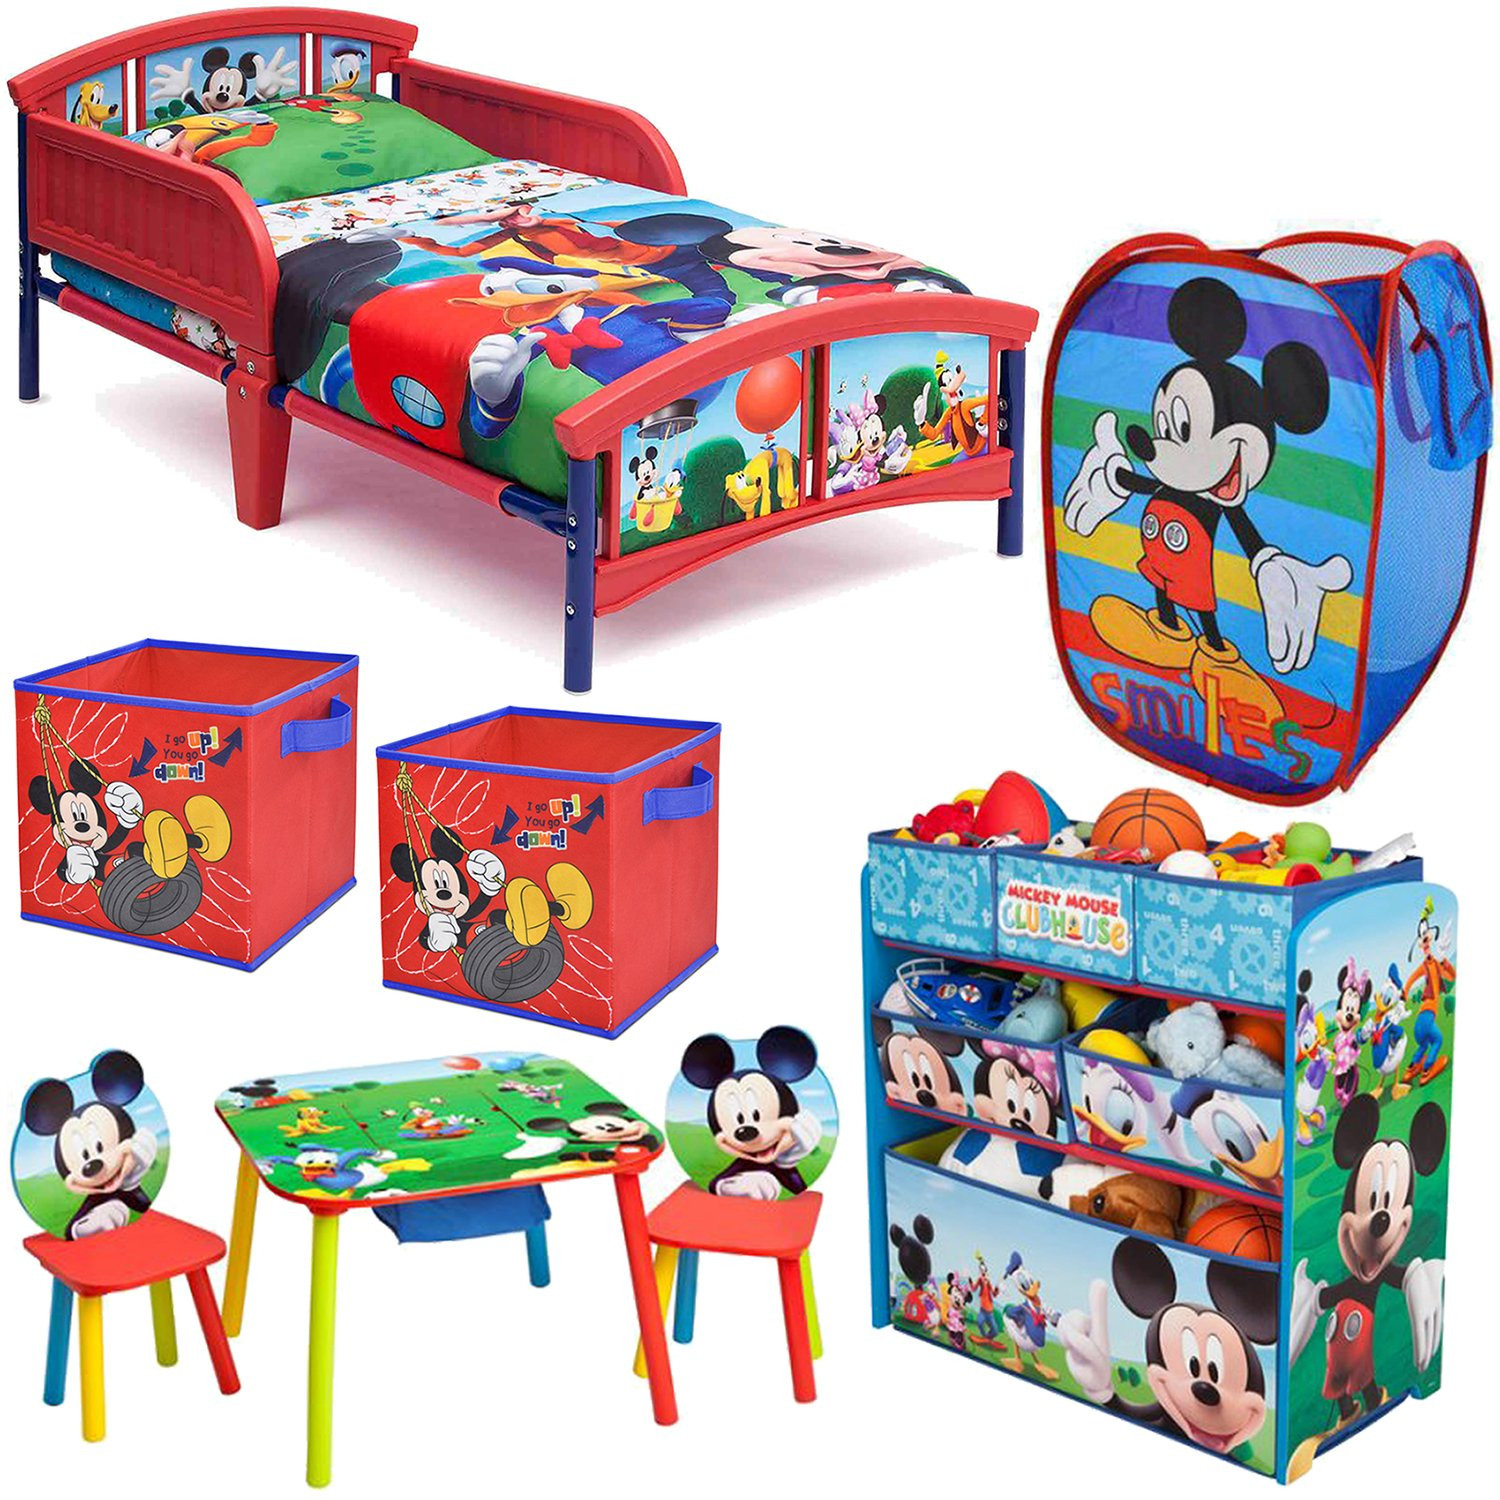 Superb Amazon.com: Disney Delta Children Mickey Mouse Clubhouse 8 Piece Furniture  Set   Plastic Toddler Bed, Multi Bin Toy Organizer, Table And Chair Set, ...